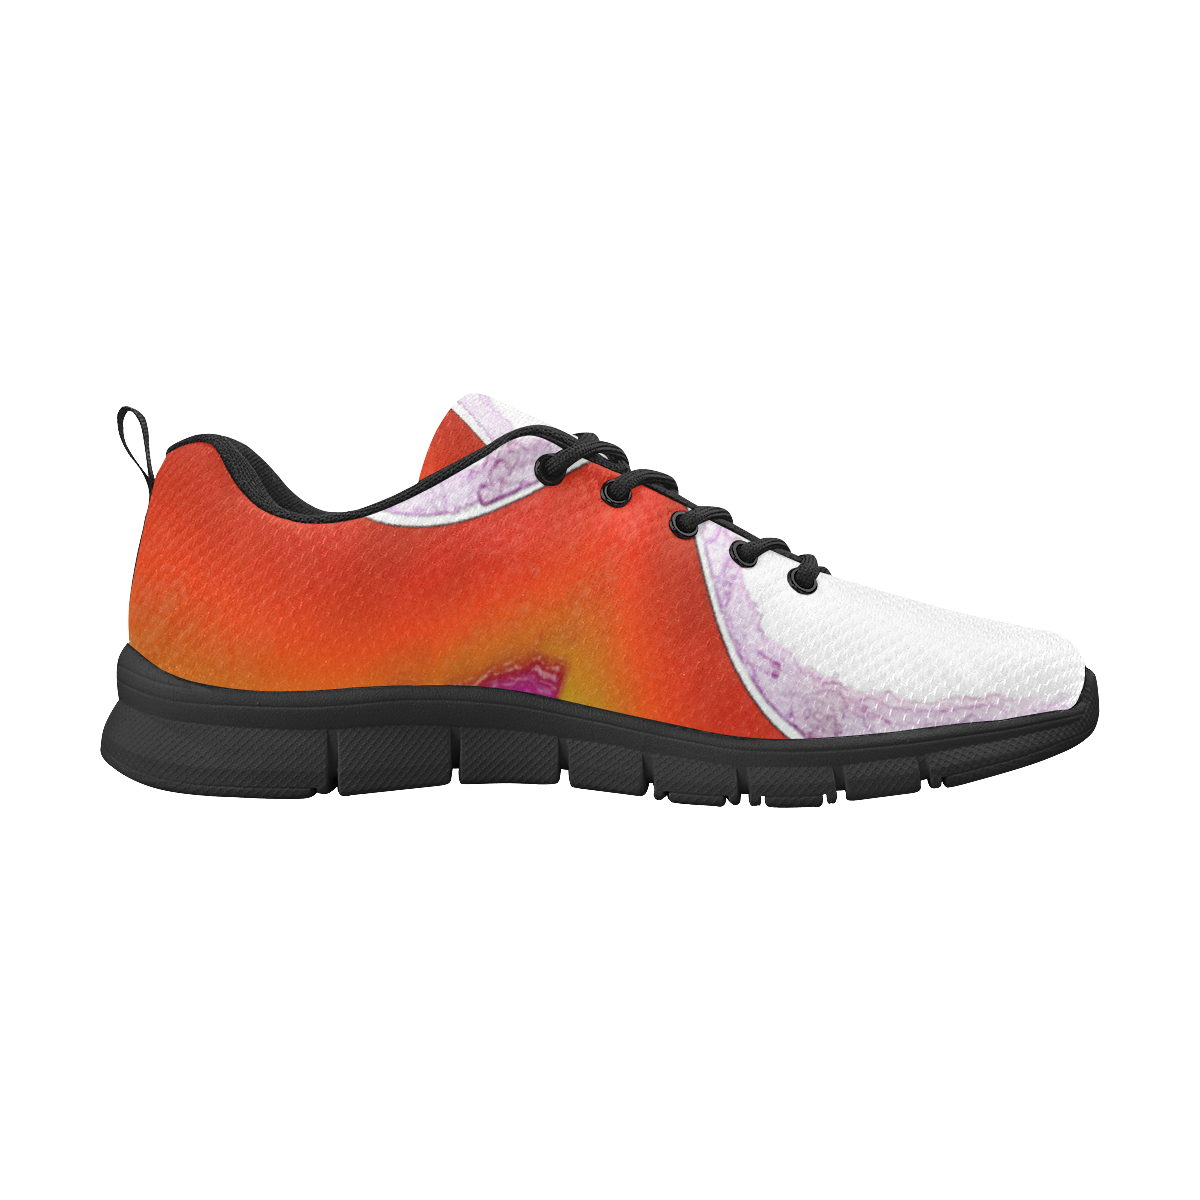 OUTCOME Men's Breathable Running Shoes/Large (Model 055)